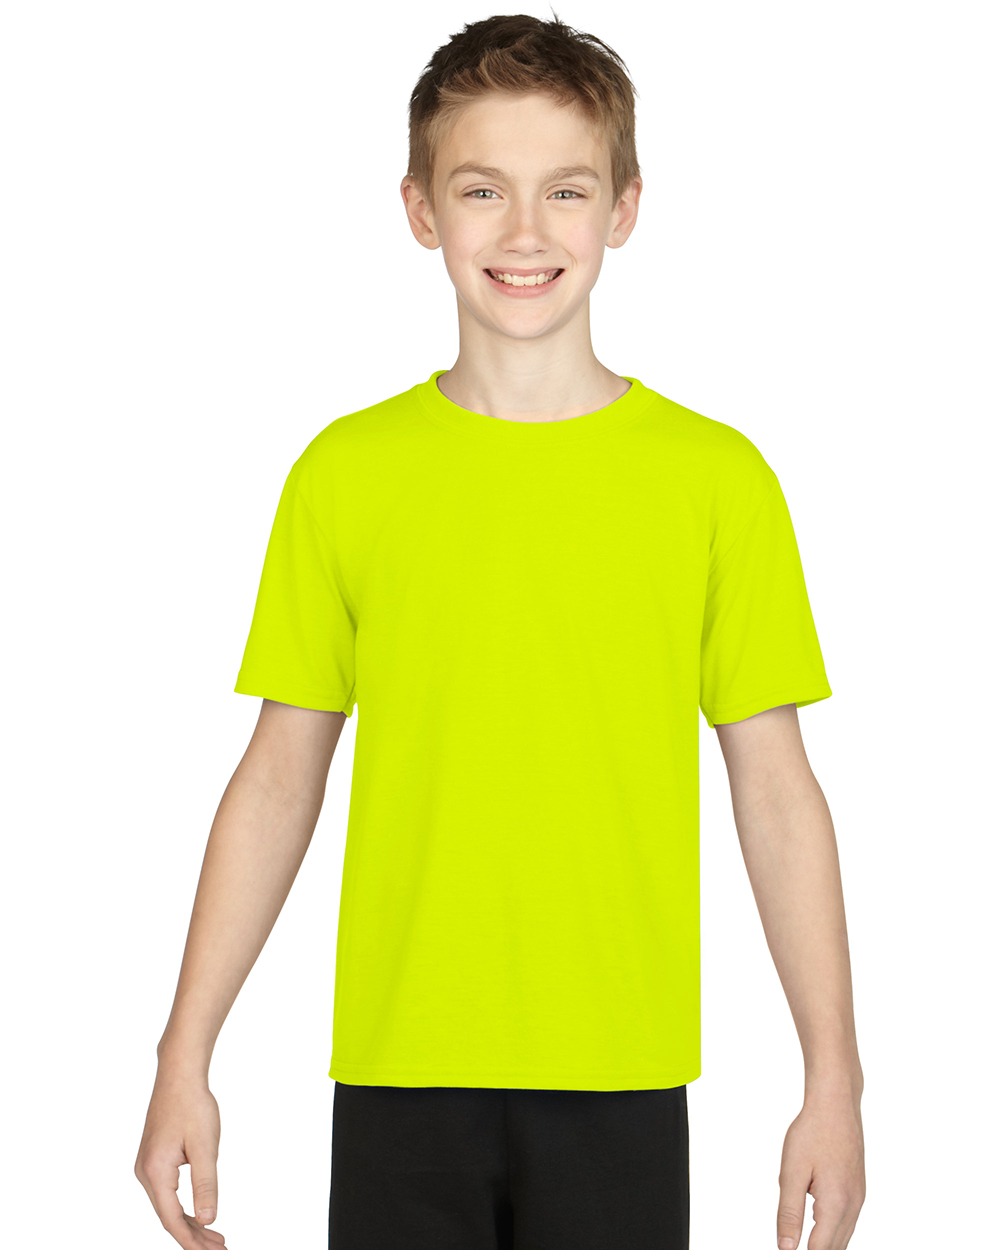 Gildan 42000B     Youth Performance     4.5 oz. 100% Polyester (Cotton Feel)